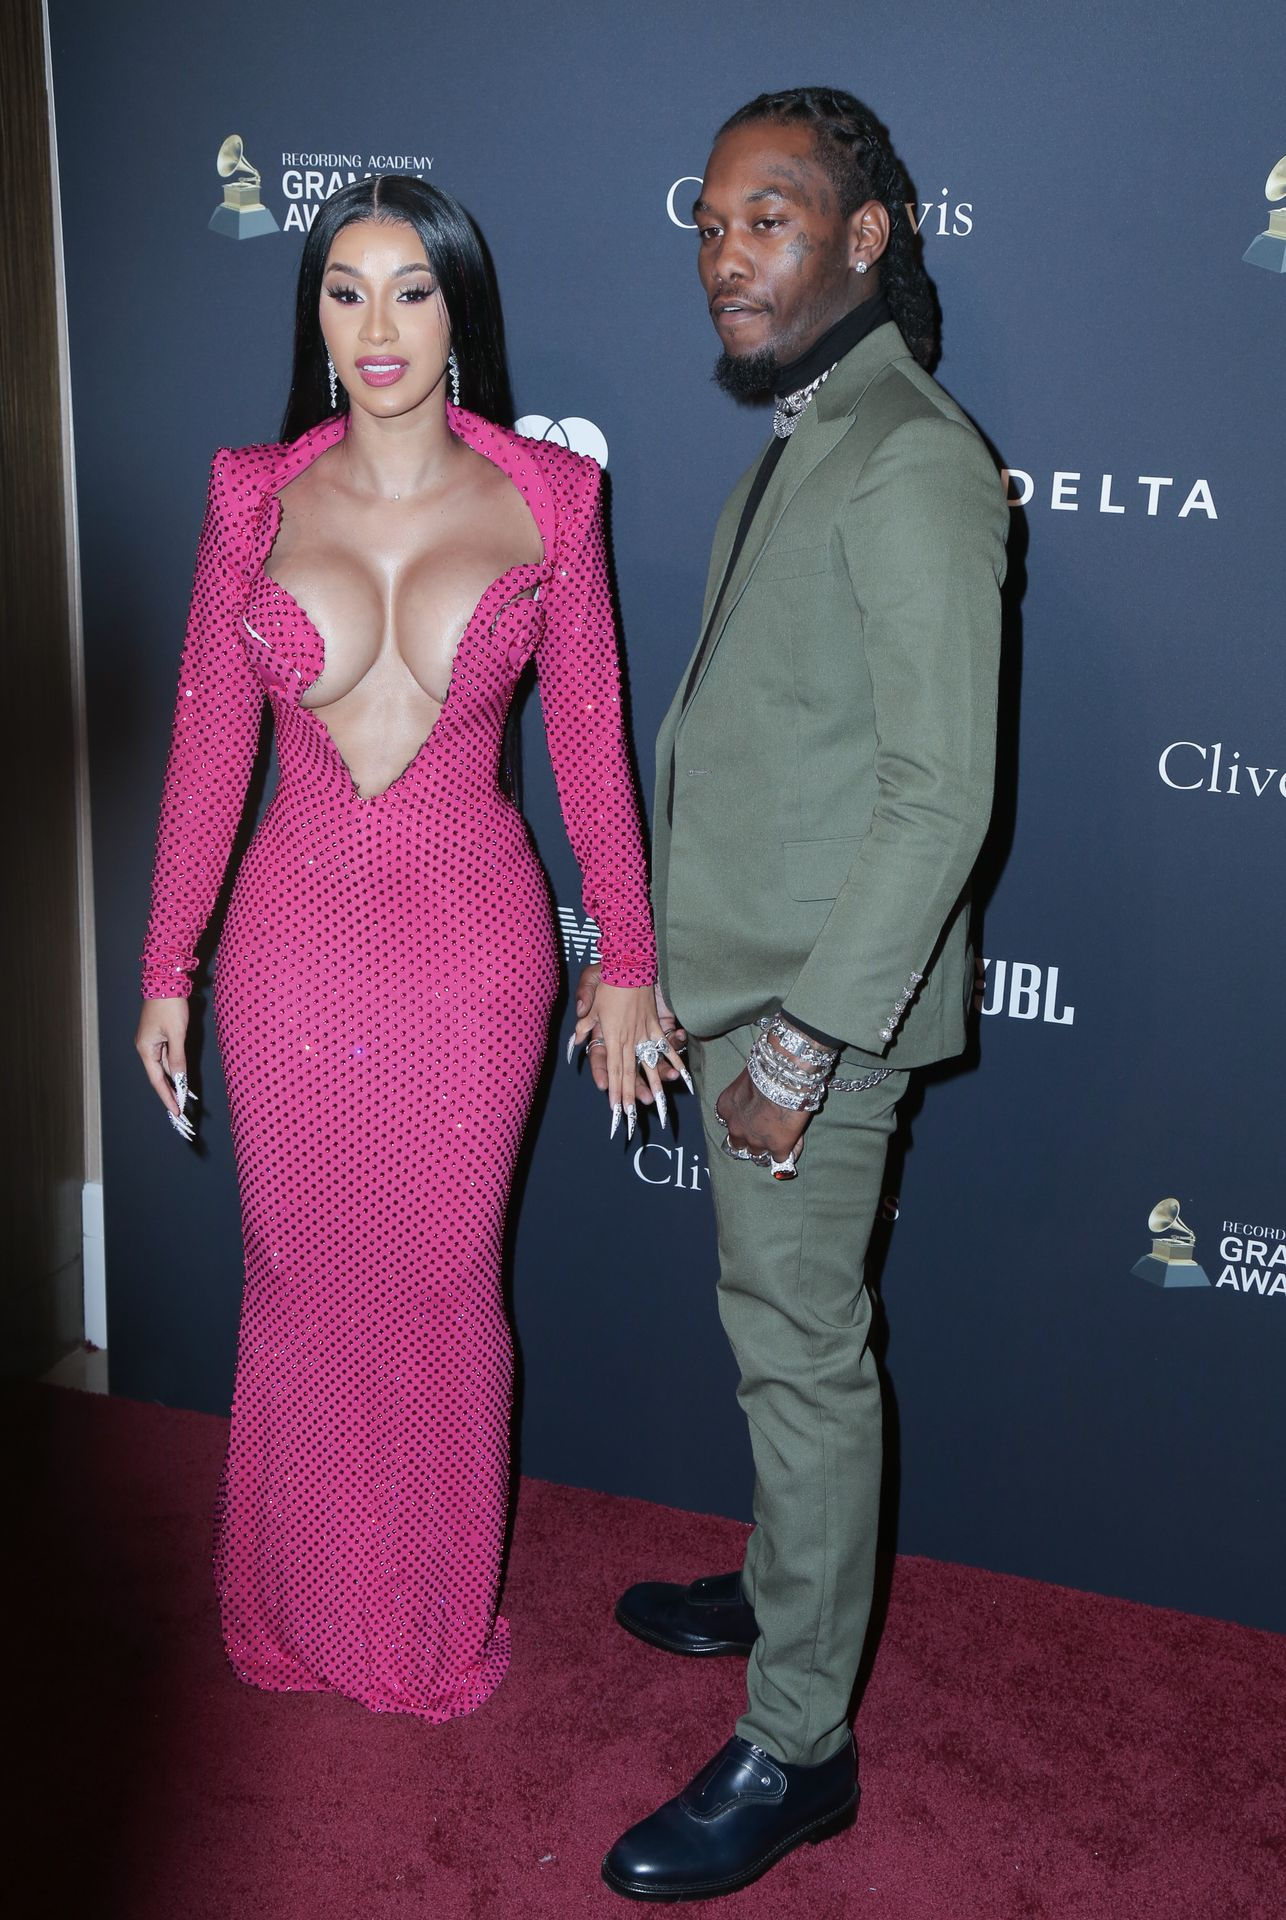 Offset Covers Cardi B's Boobs To Avoid Wardrobe Malfunction At Clive Davis Pre Grammy Party 0105